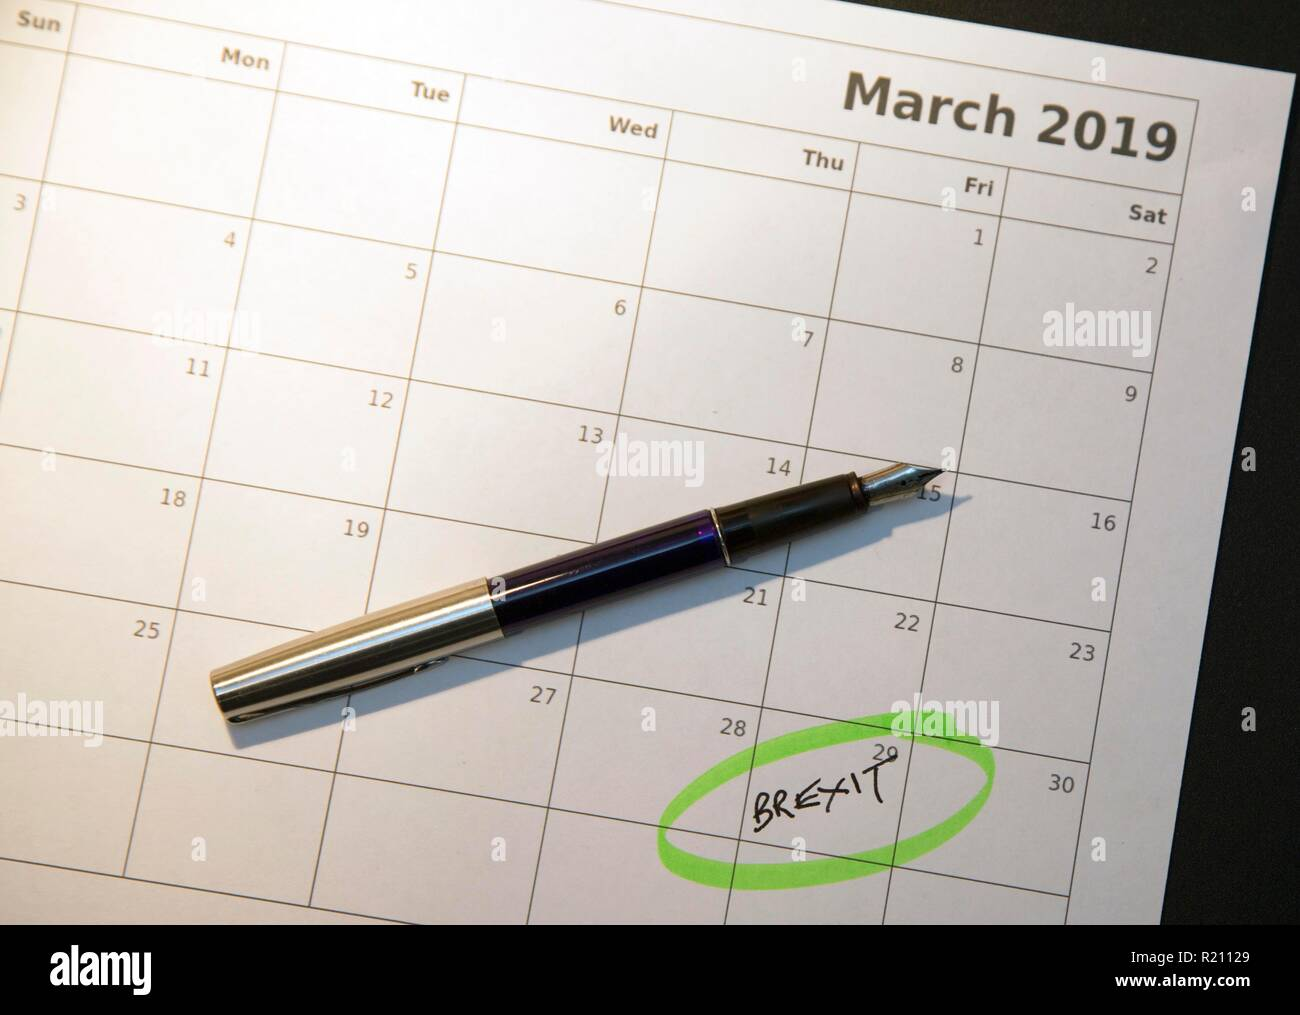 Brexit day: UK due to leave the EU on 29th March 2019 - Stock Image